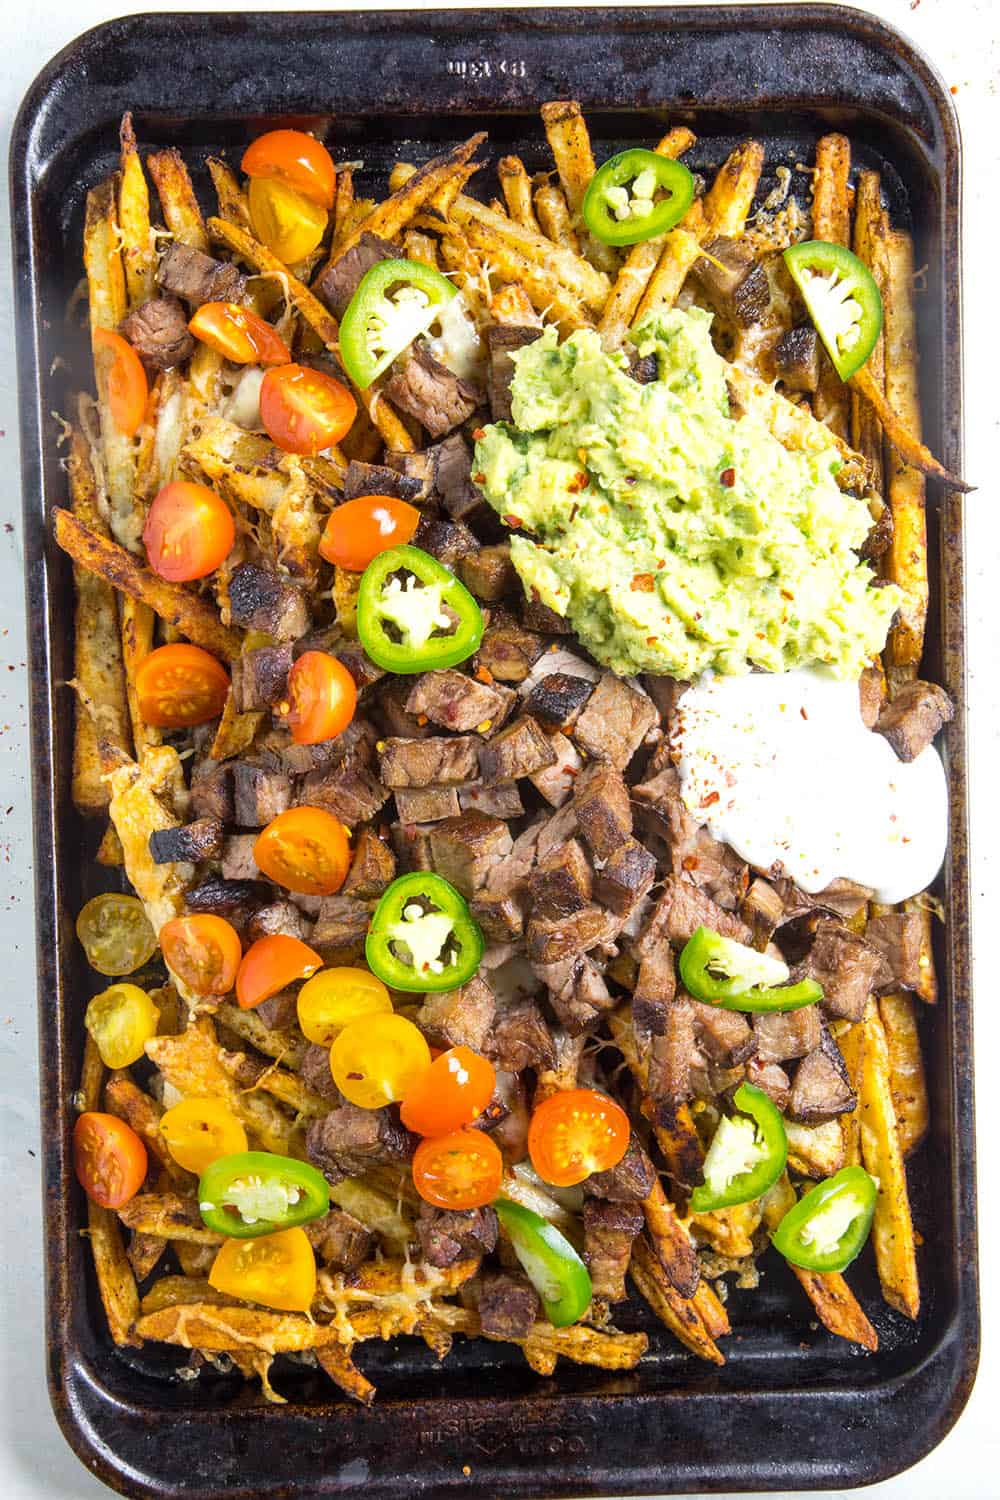 Carne Asada Fries on a baking sheet, ready to serve